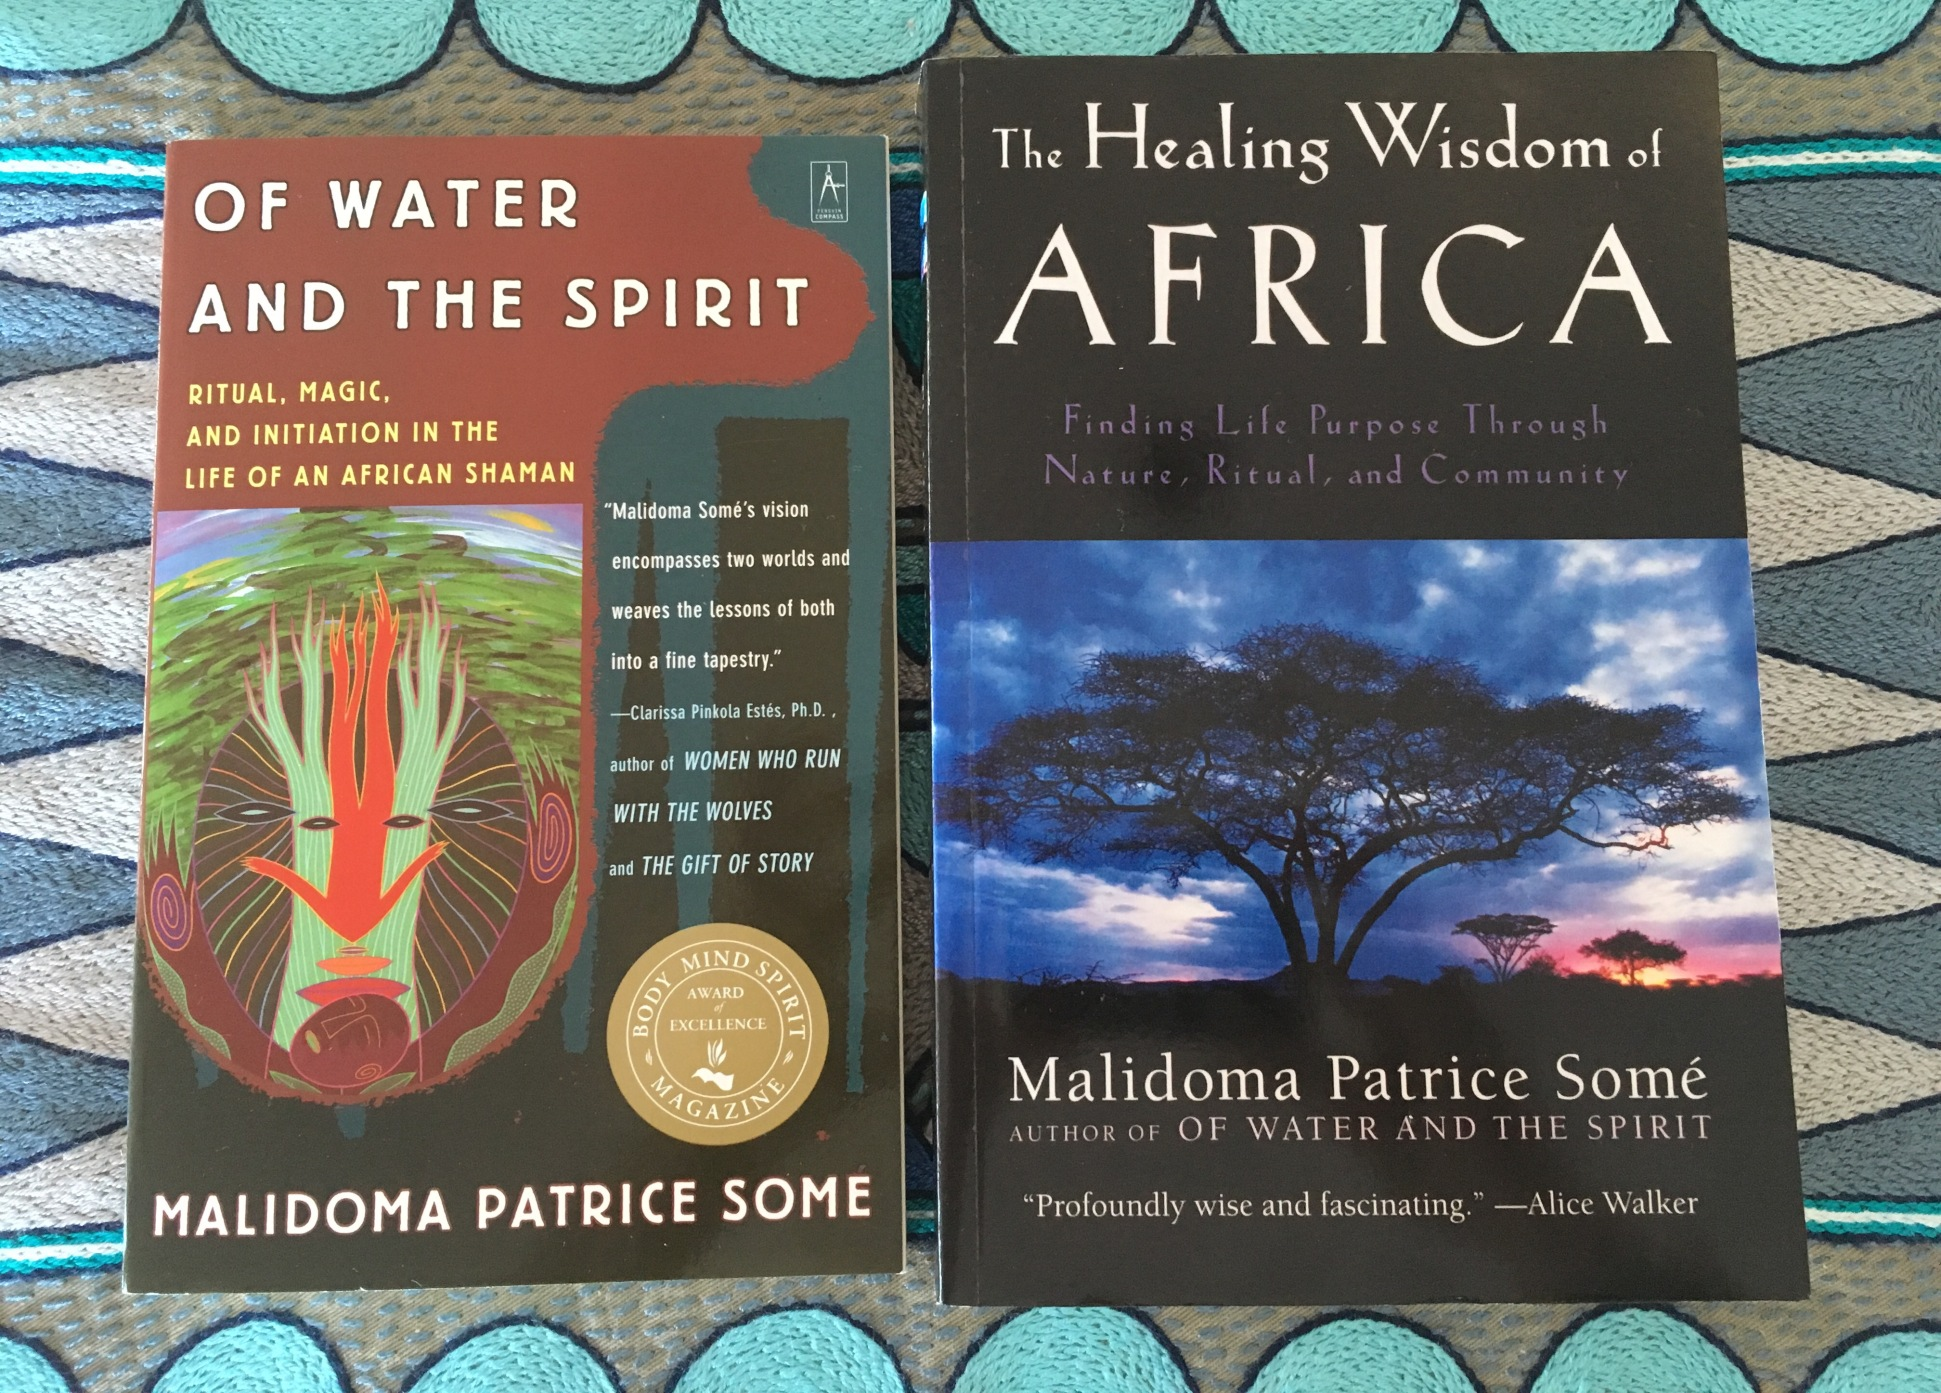 My first introduction to the teaching of the Dagara people was through two books written by Malidoma Patrice Some - 'Of Water and the Spirit' and 'The Healing Wisdom of Africa'. Some, a Dagara shaman, shares his vision for connecting with nature through rituals based on the five Dagara elements.